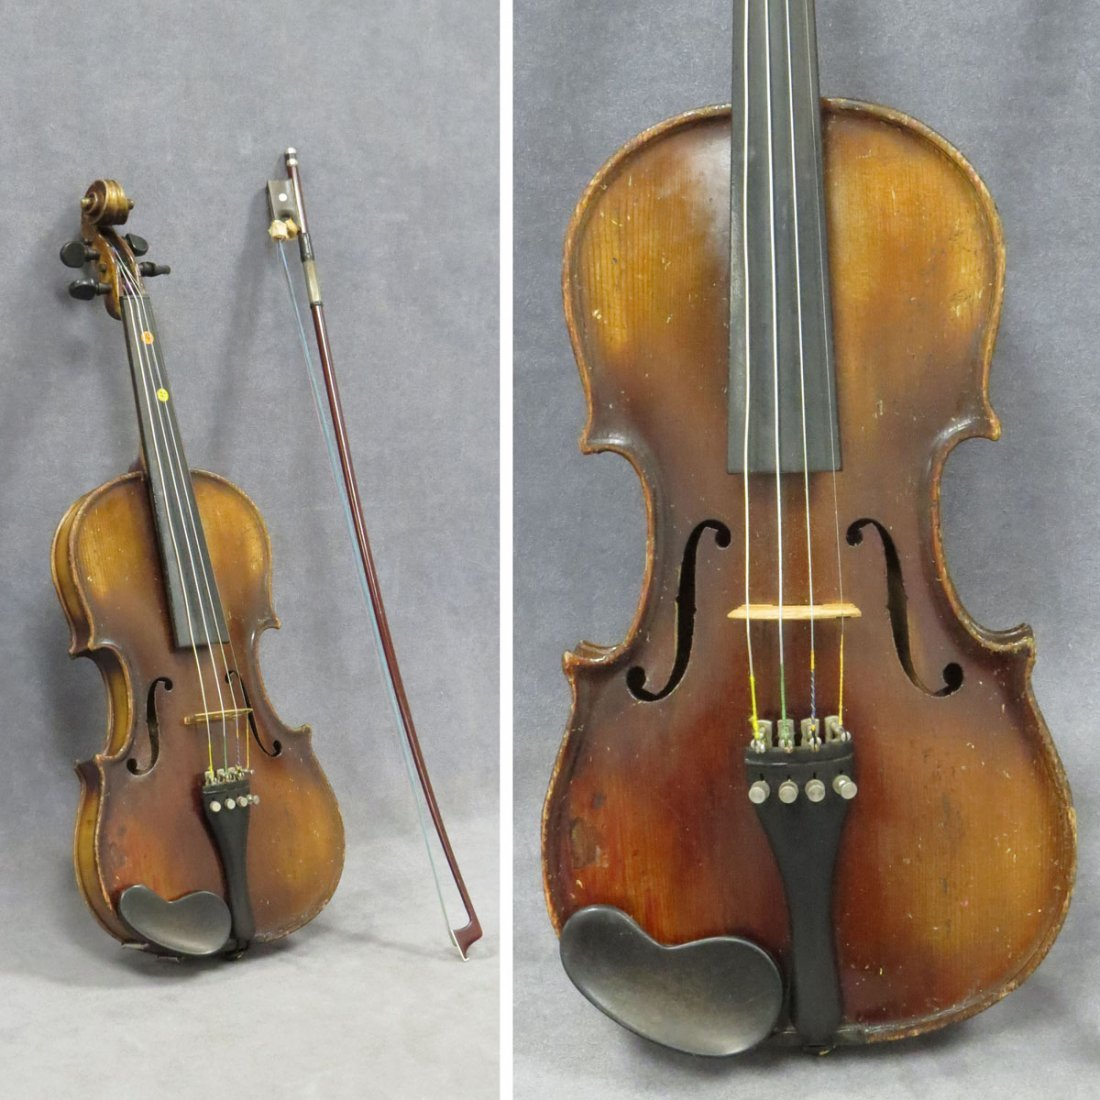 VINTAGE GERMAN YOUTH'S VIOLIN AND BOW (WITH CASE)